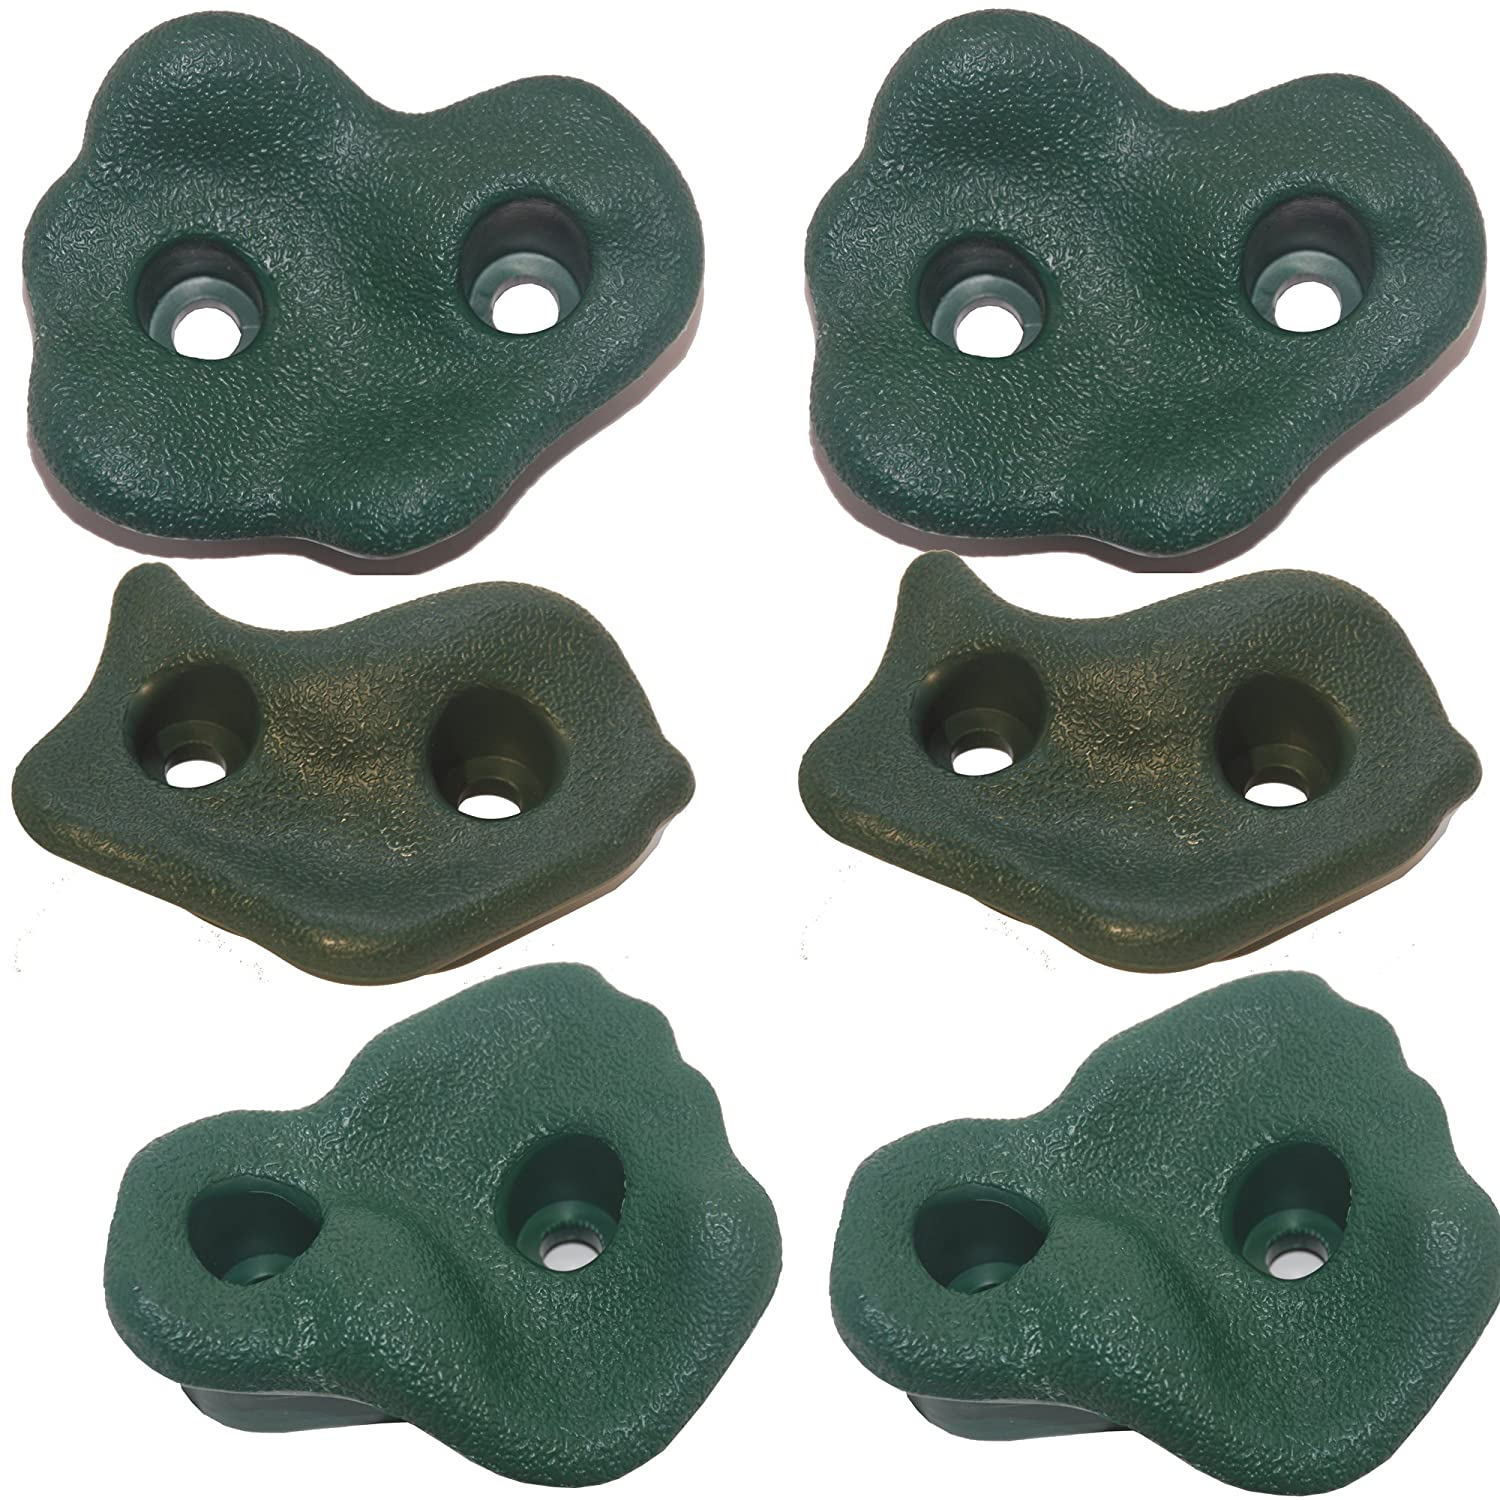 Green(2Pack) Rock Pegs Medium for Indoor & Outdoor Rock Wall to Get Kids Exercise Climbing to Strength Upper Body Known As Rock Hold  Rock Climbing Wall